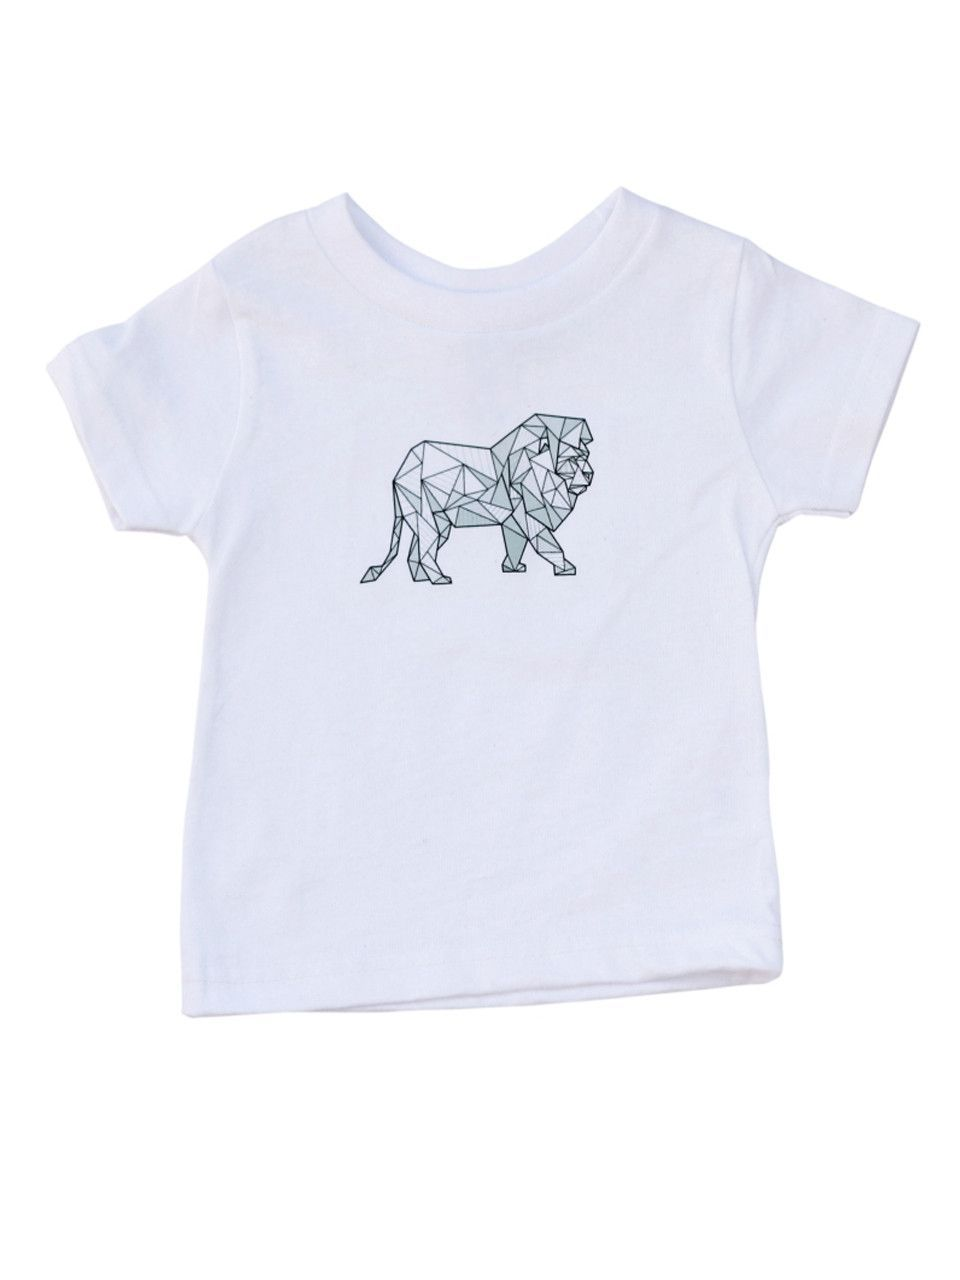 Geo lion tee products pinterest geo and products